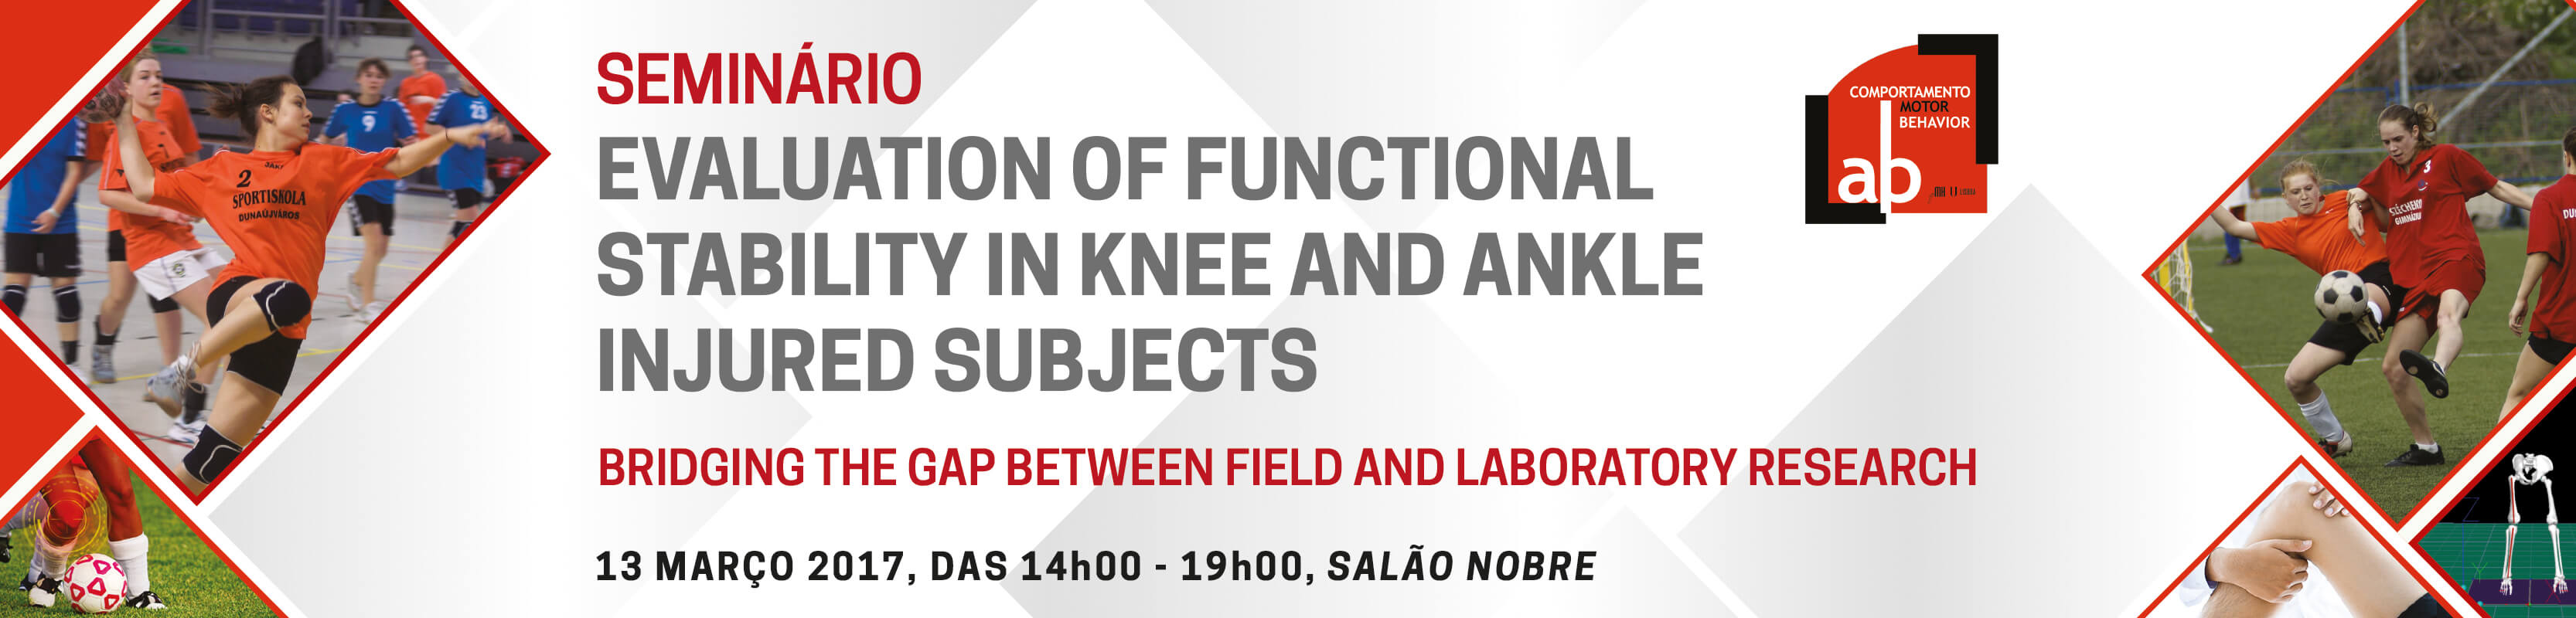 Seminário Evaluation Of Functional Stability in Knee and Ankle Injured Subjects